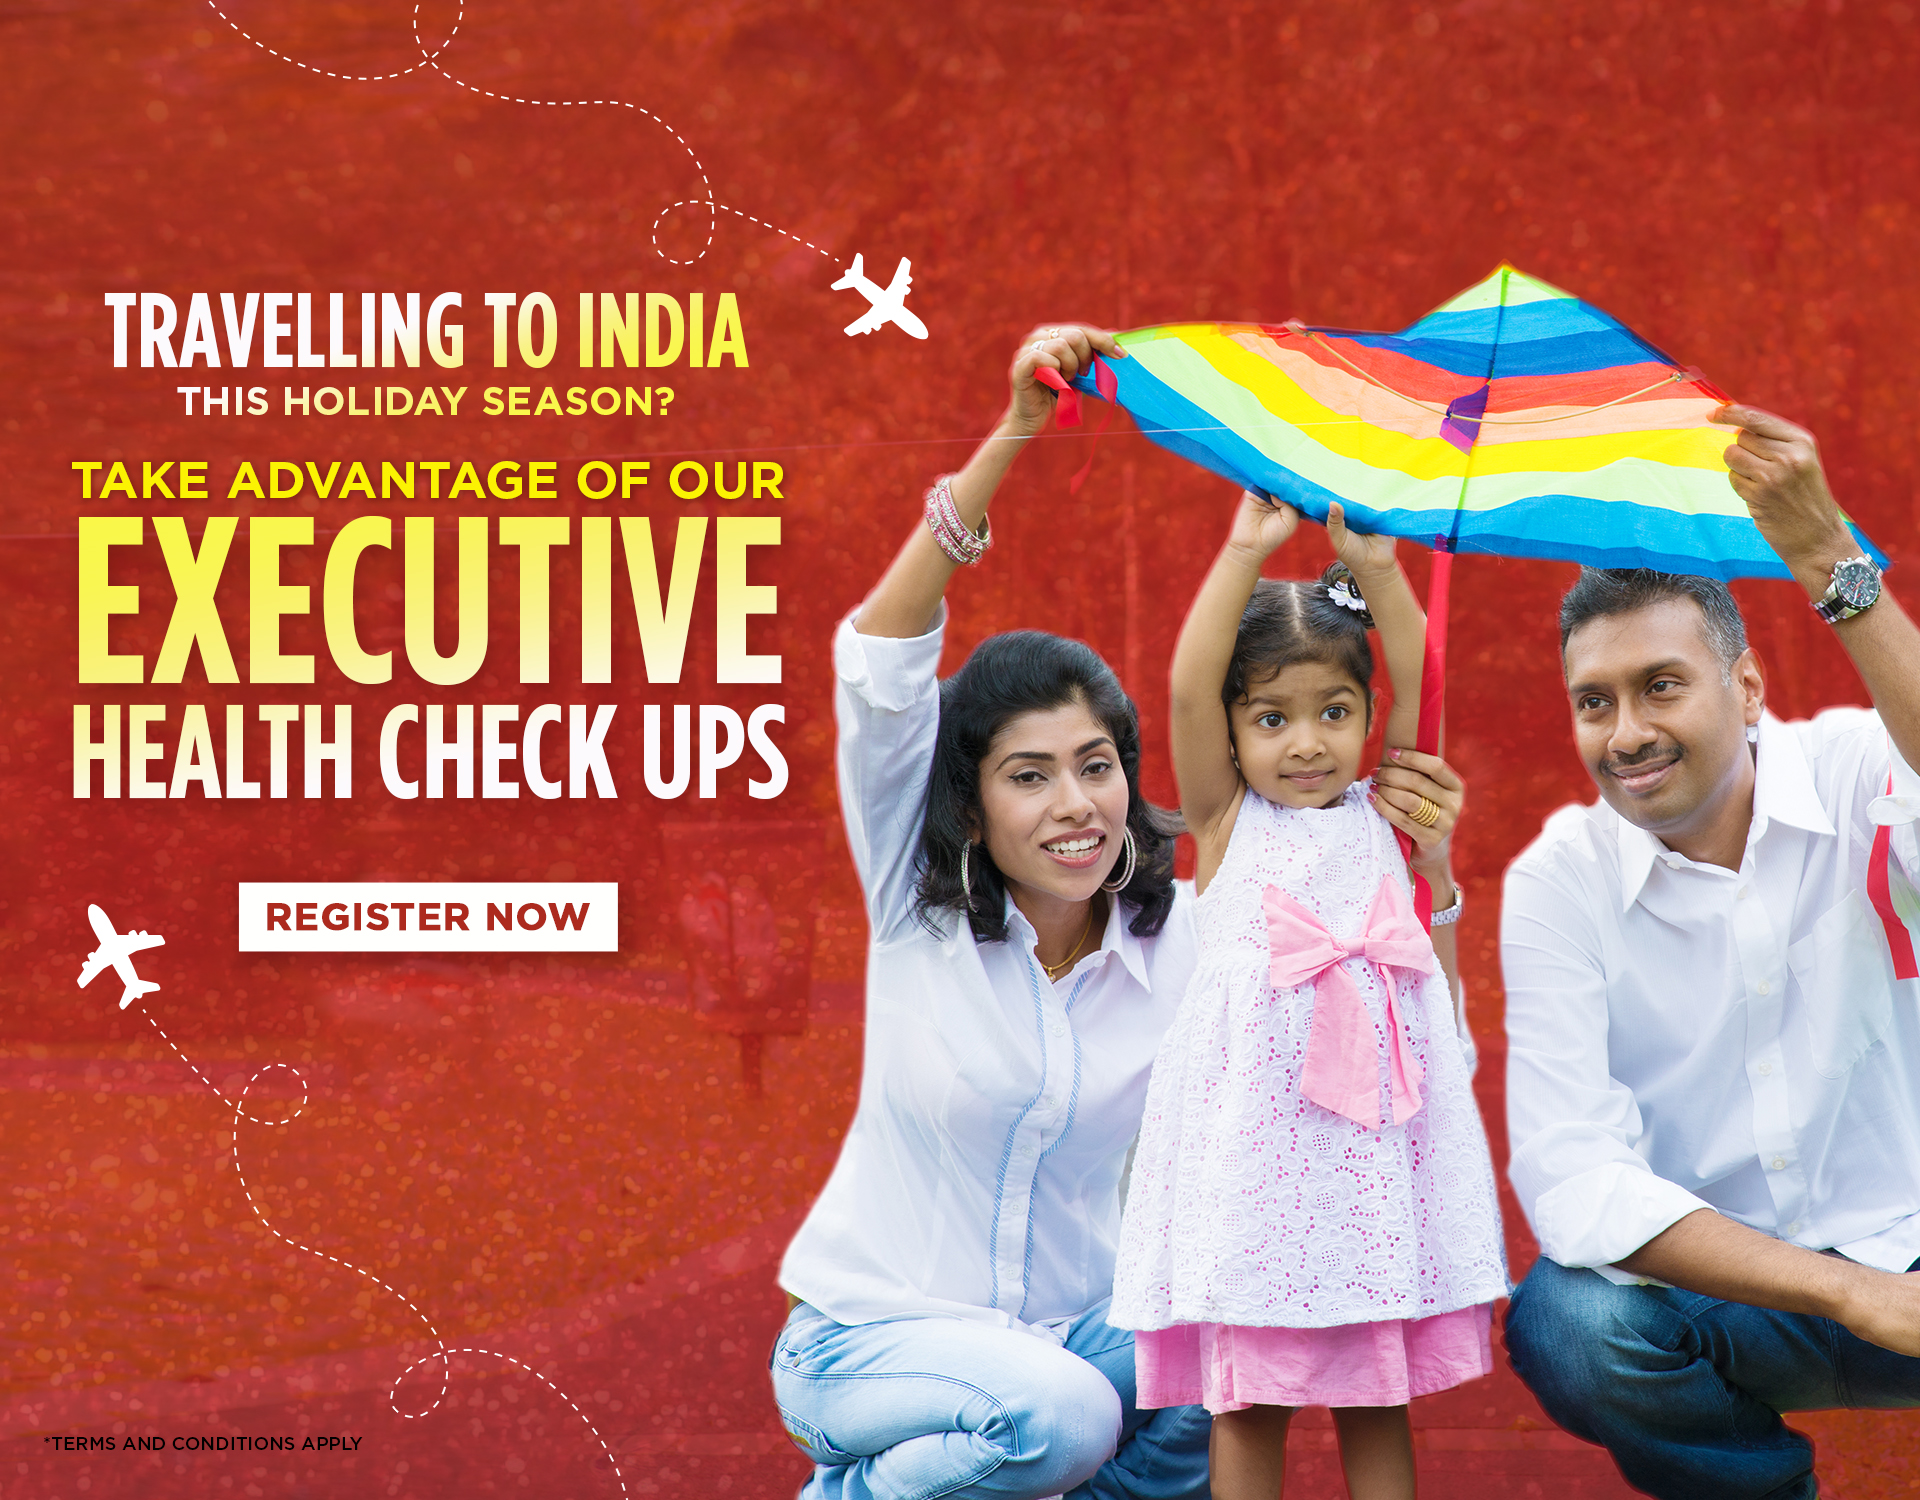 Kokilaben Dhirubhai Ambani Hospital - Travelling to India this Holiday Season?